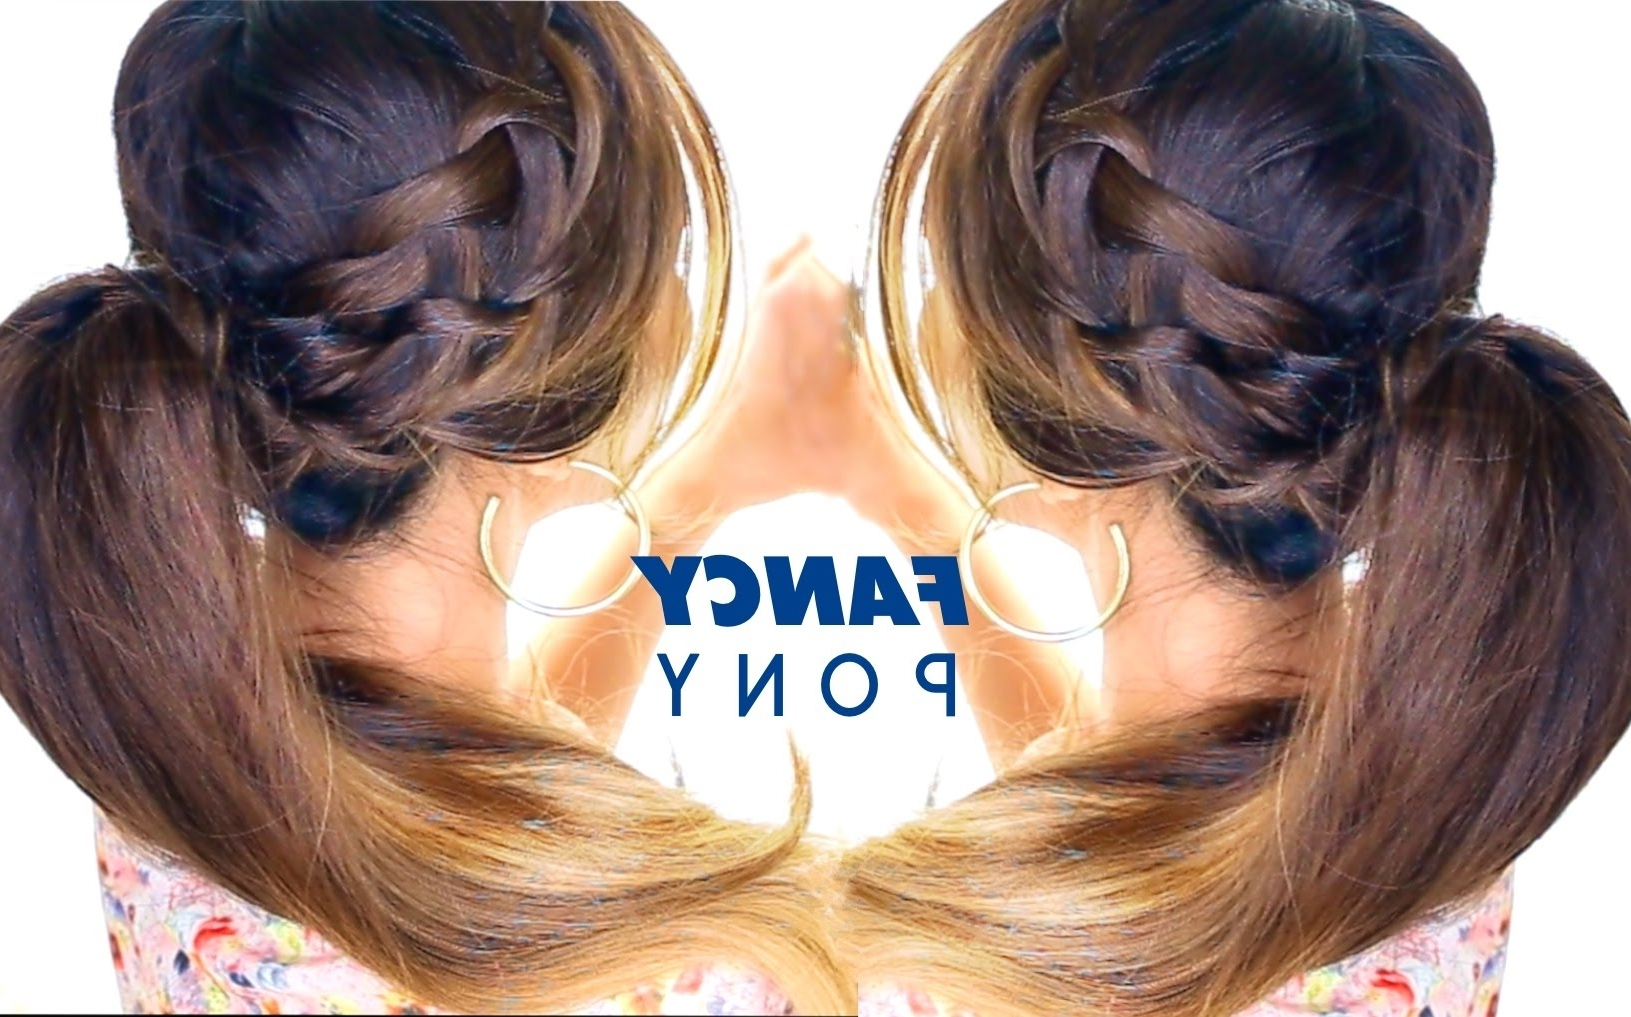 Well Known Braided Ponytail Hairstyles Regarding Awesome French Braid Ponytail Hairstyle ☆ Braid Hairstyles (View 15 of 15)